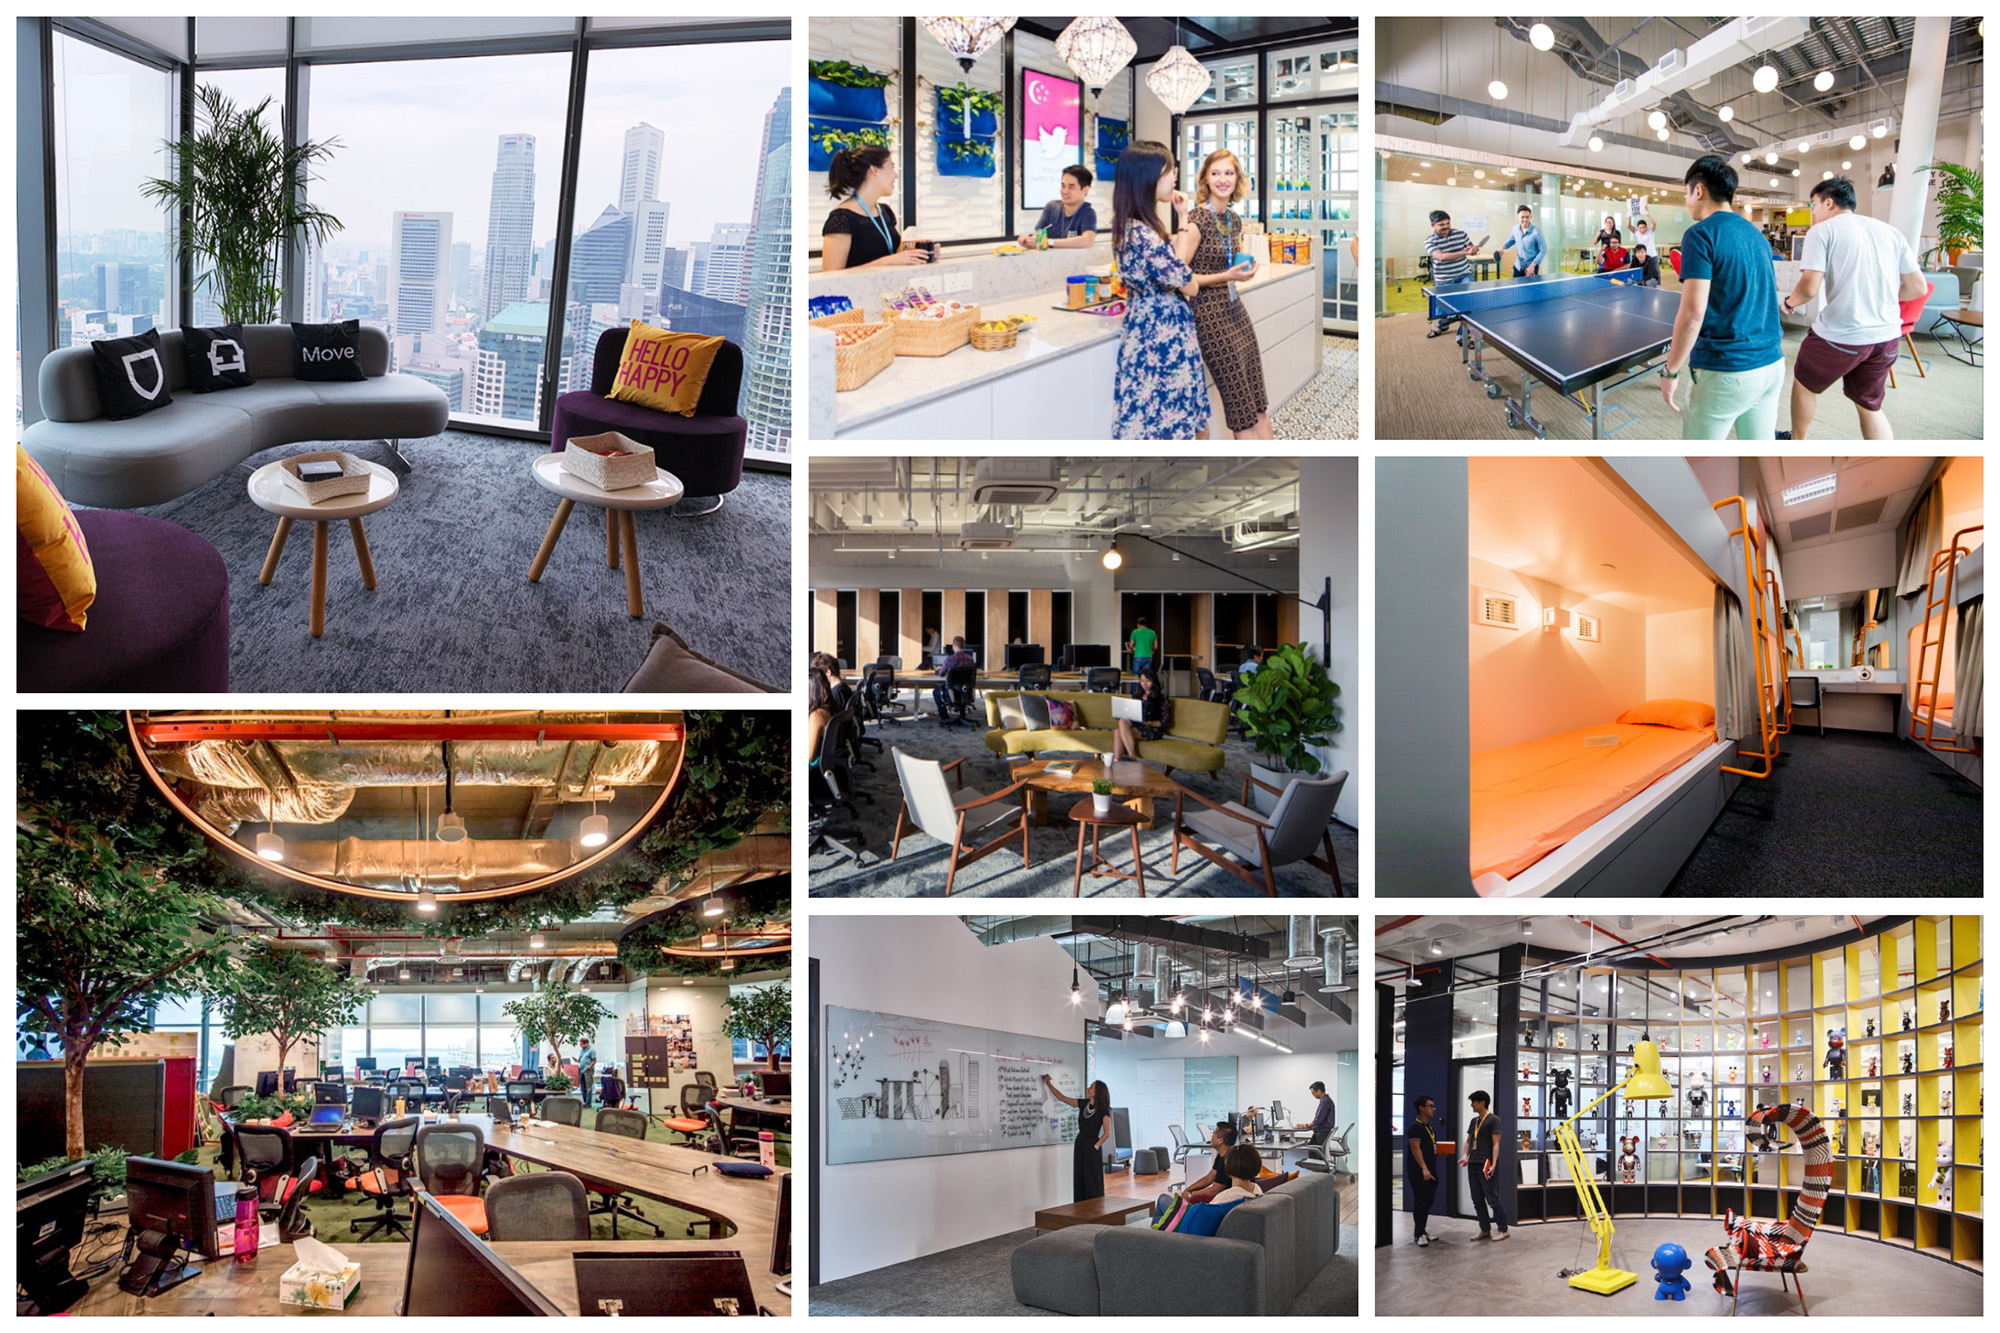 0de3162588 Here Are 8 Cool Offices In Singapore That'll Make You Look Forward To Going  To Work